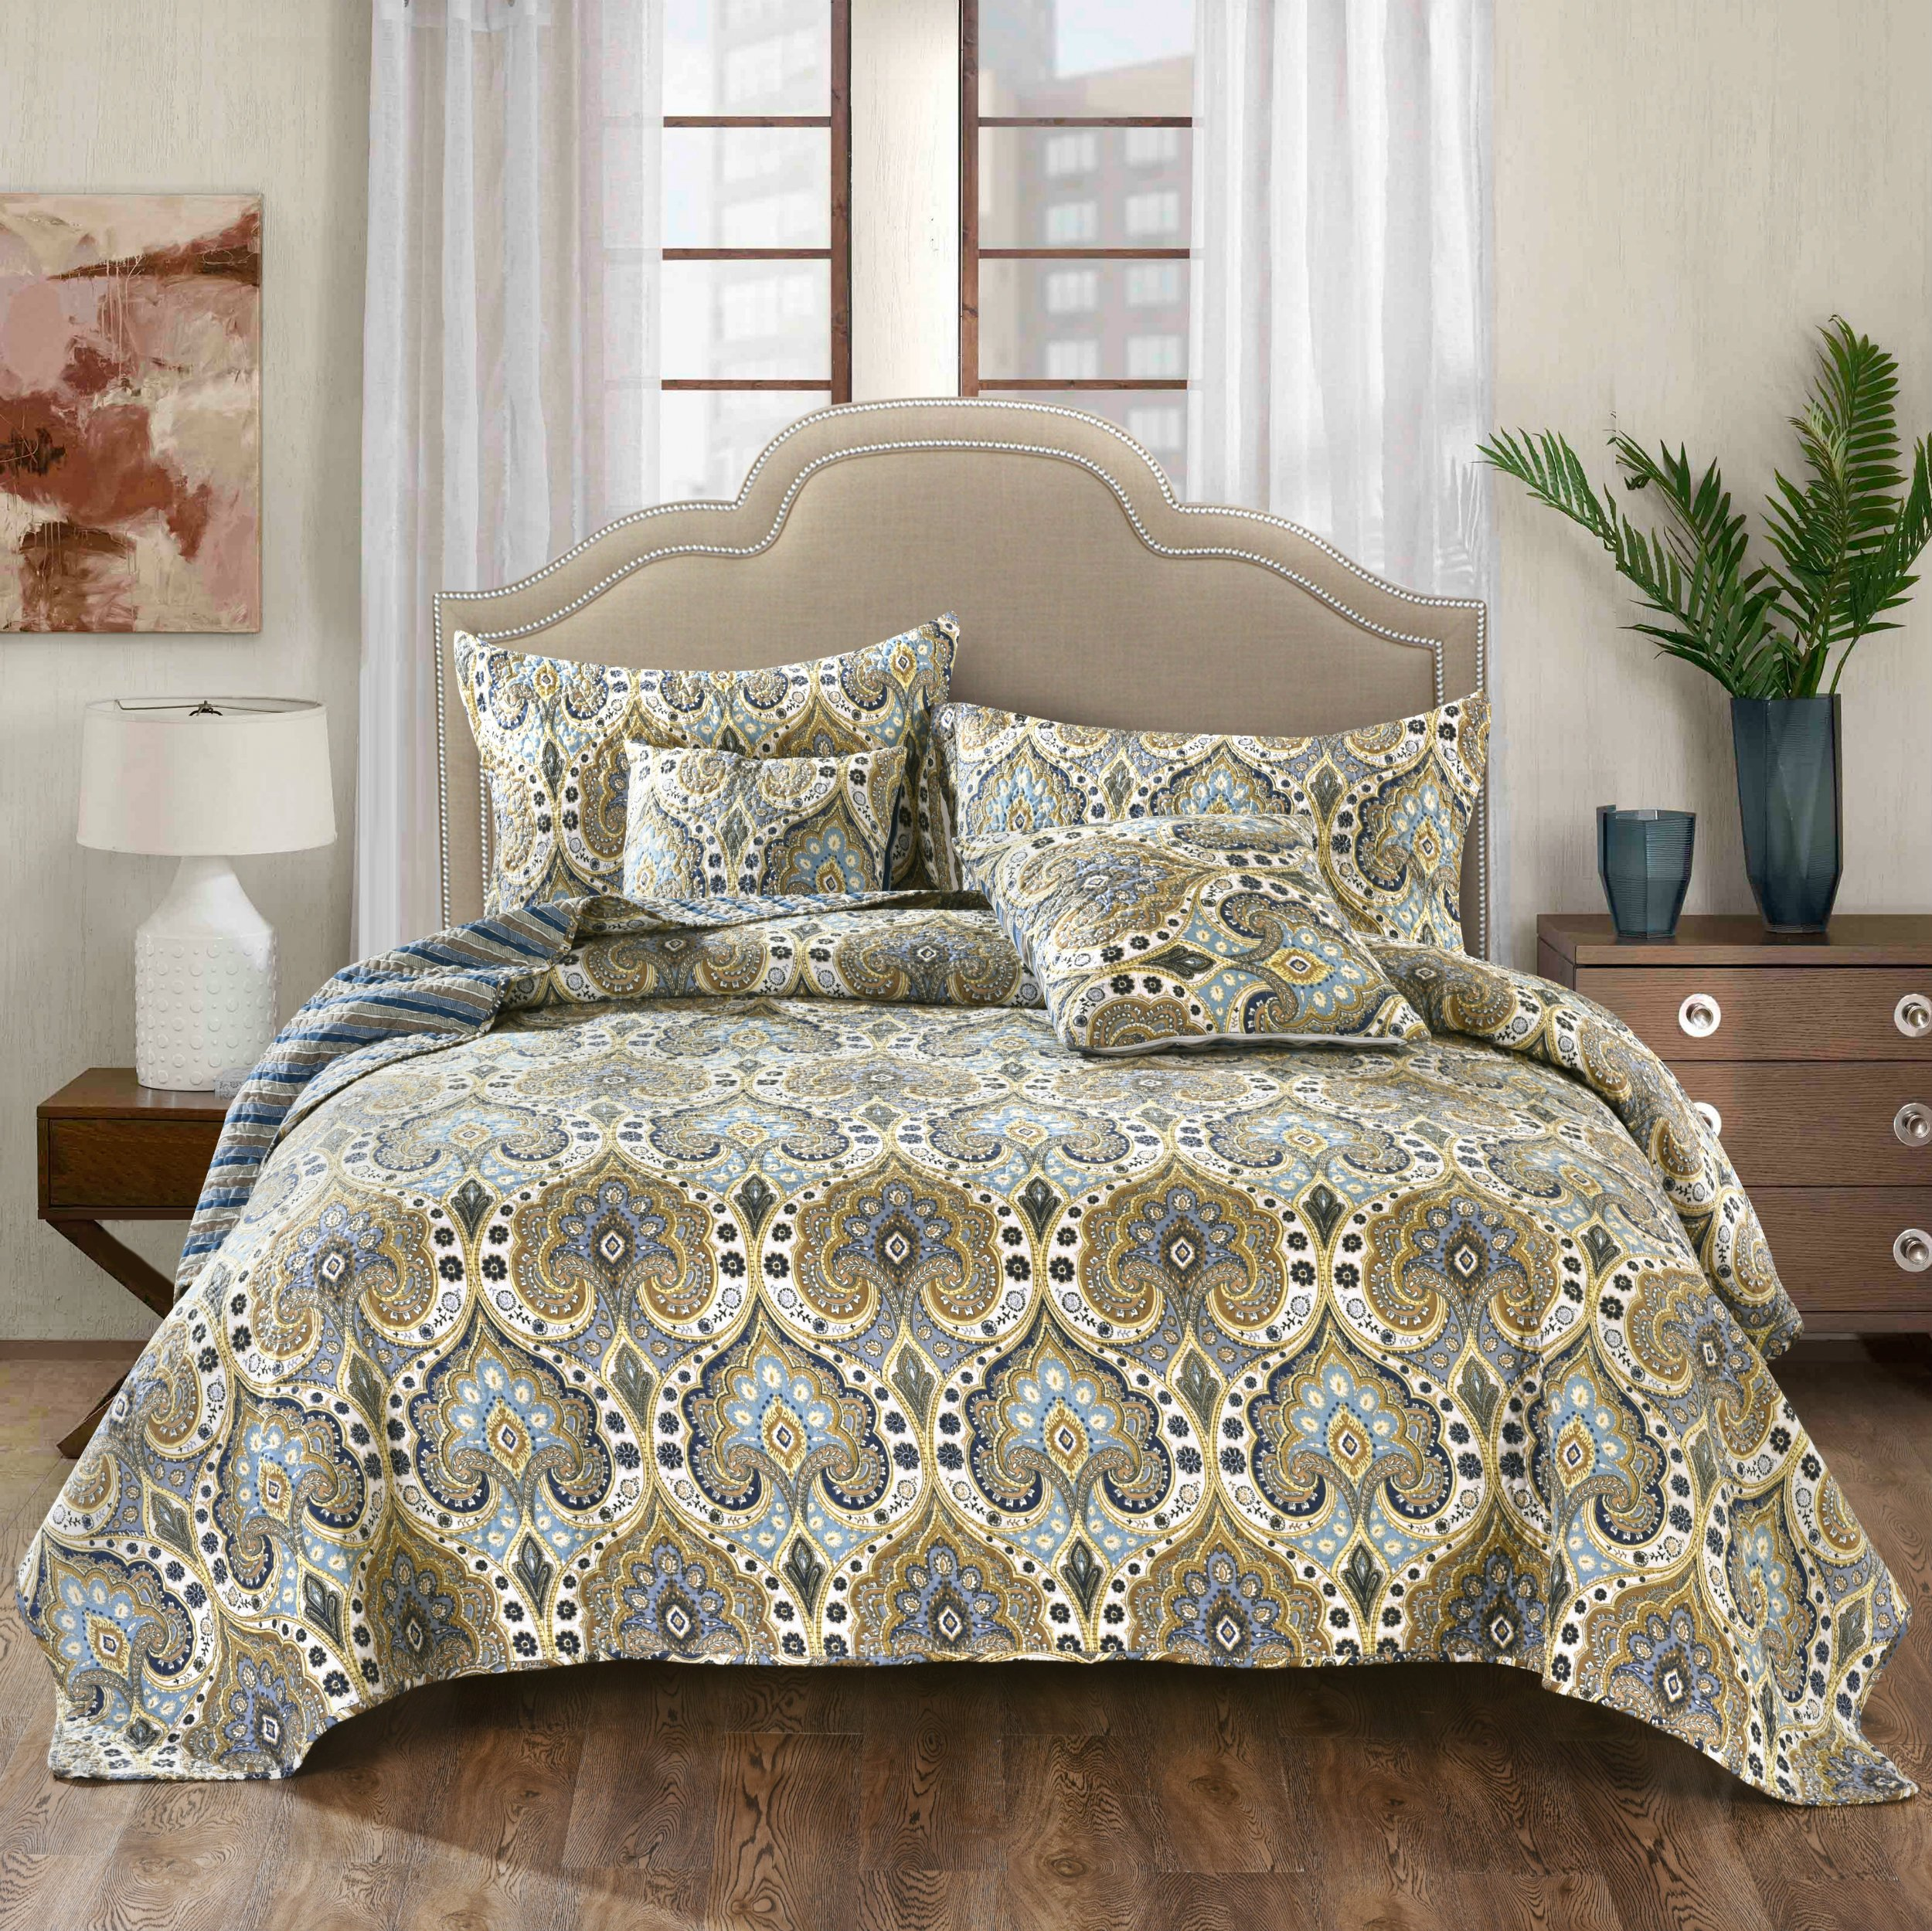 Tache Home Fashion Bohemian Spades Quilted Coverlet Bedspread Set - Bright Vibrant Multi Colorful Olive Green Navy Blue Floral Print - Full - 3-Pieces